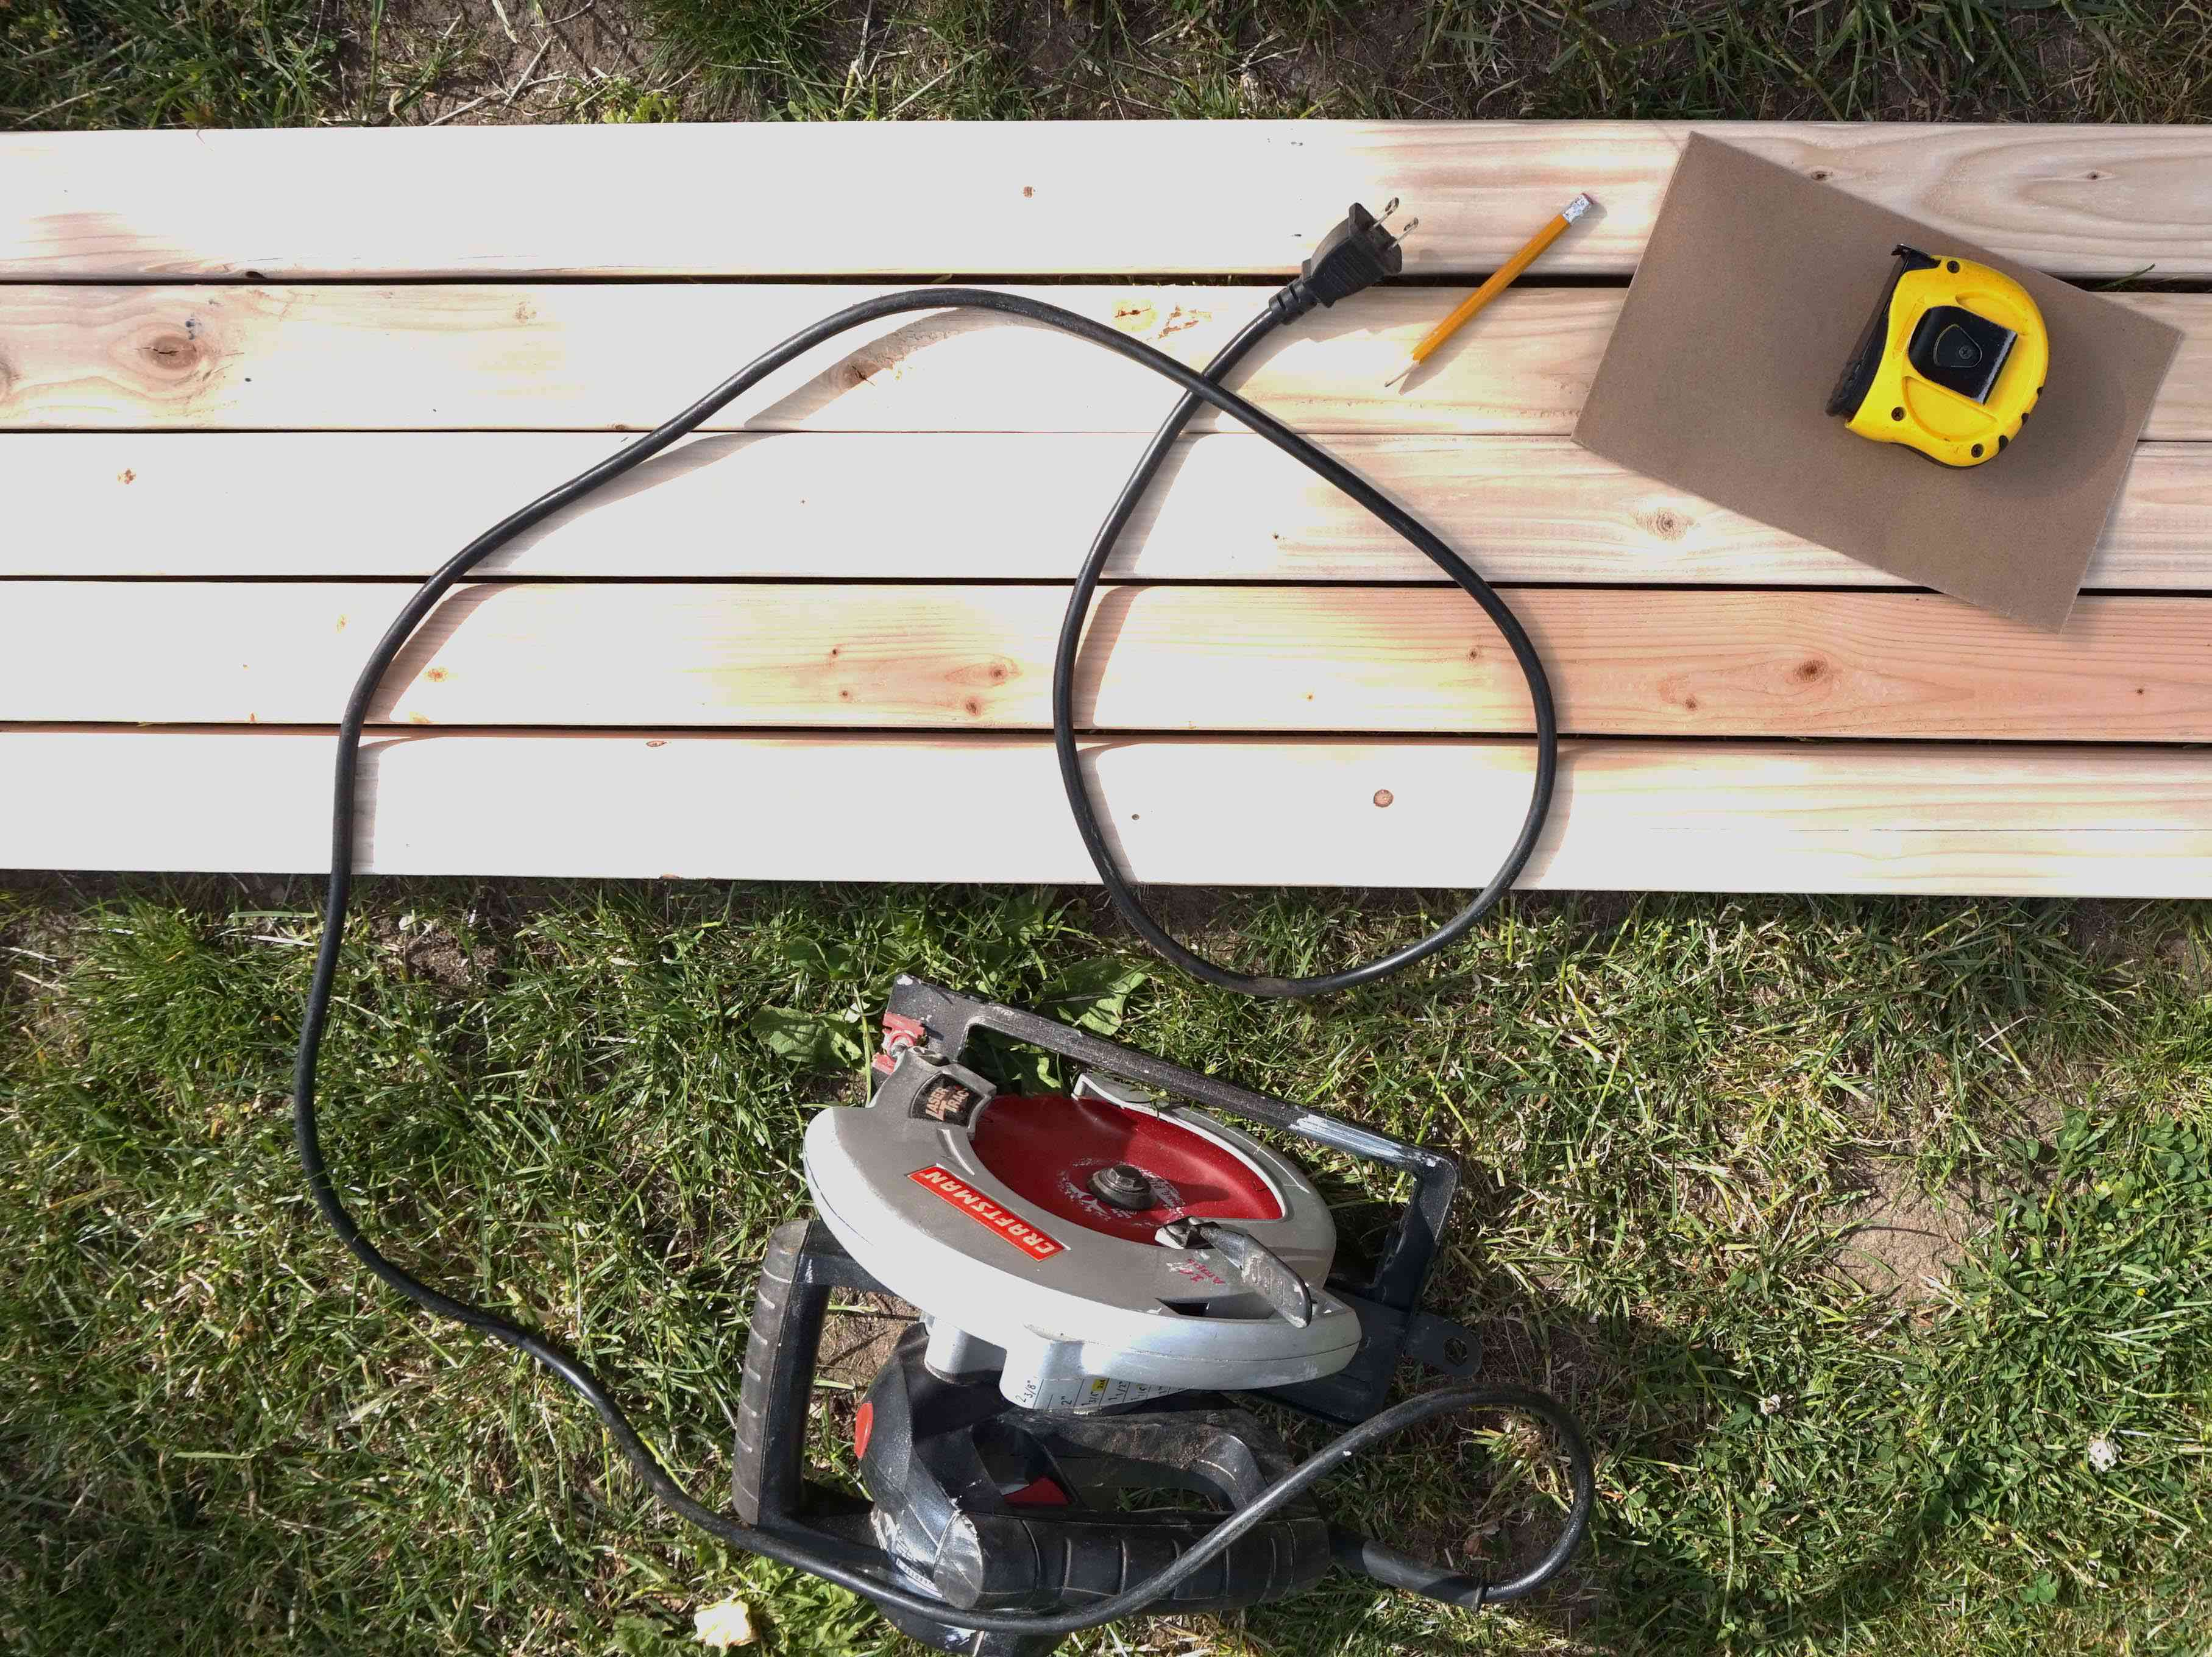 A saw, wooden boards, piece of sandpaper, pencil and tape measure sitting on the grass